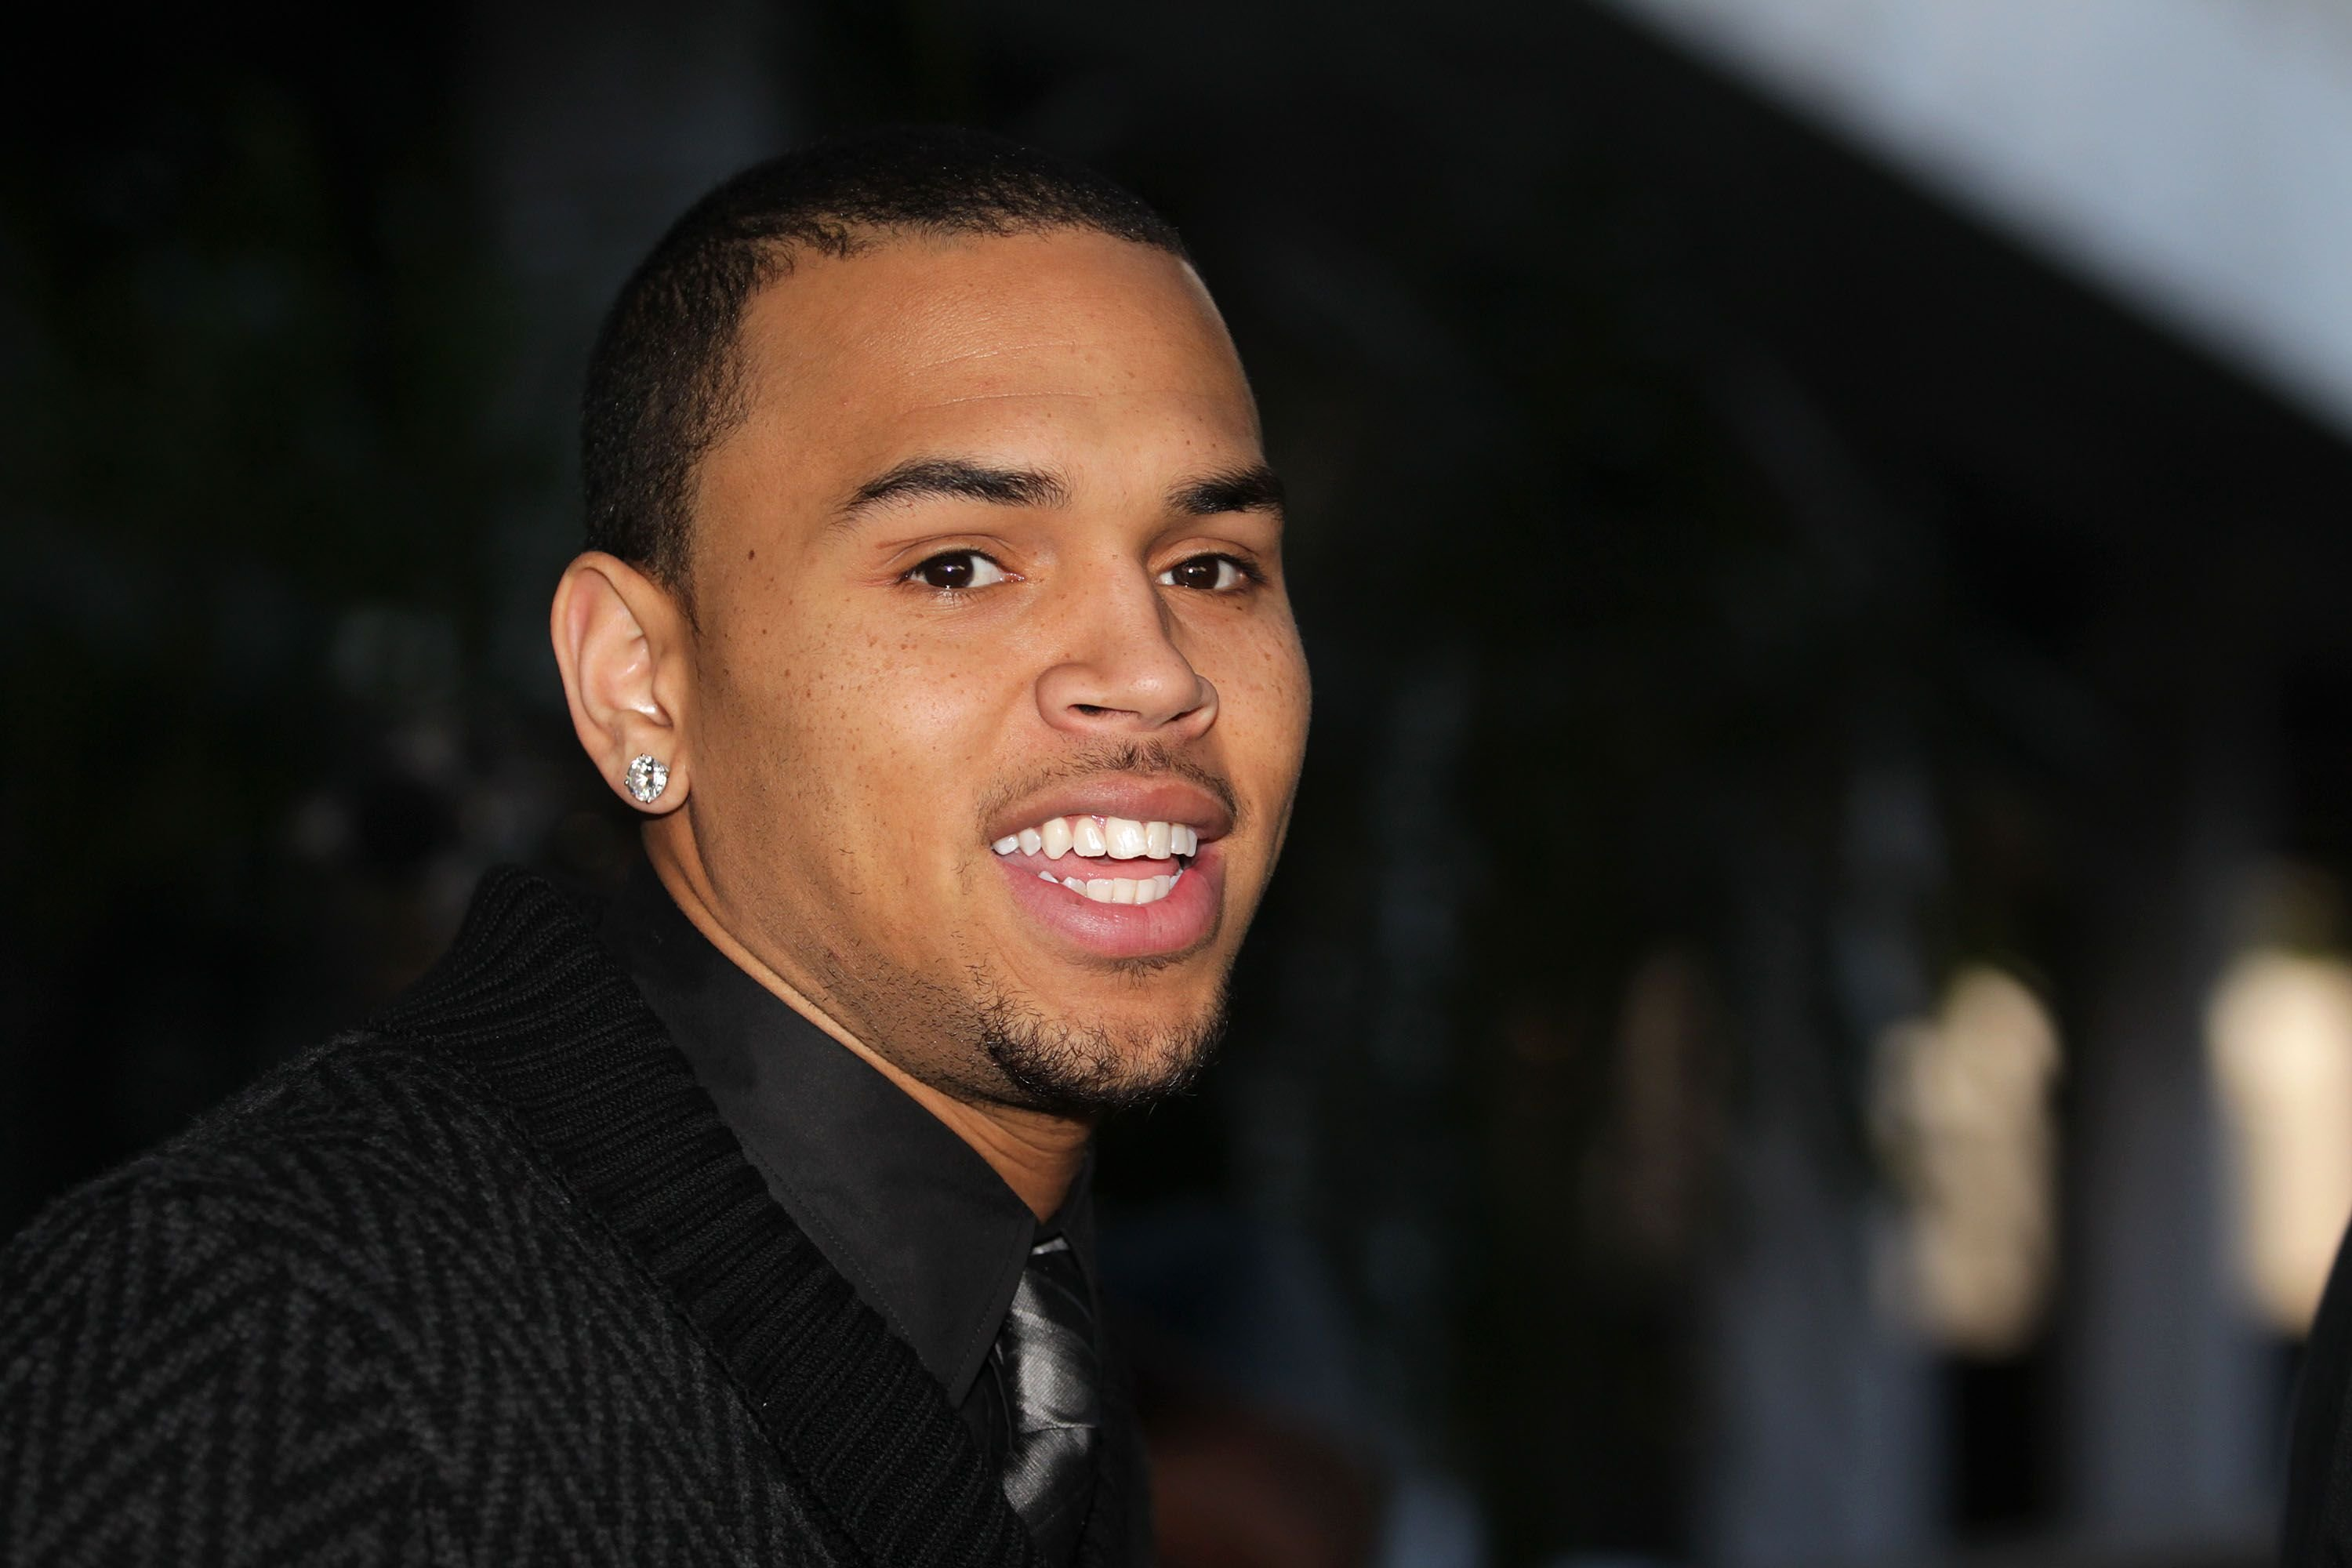 Chris Brown at the Los Angeles courthouse after a probation progress hearing on January 28, 2011 in Los Angeles, California. Brown pleaded guilty to assaulting his then-girlfriend, singer Rihanna, after a pre-Grammy Awards party in 2009. | Source: Getty Images